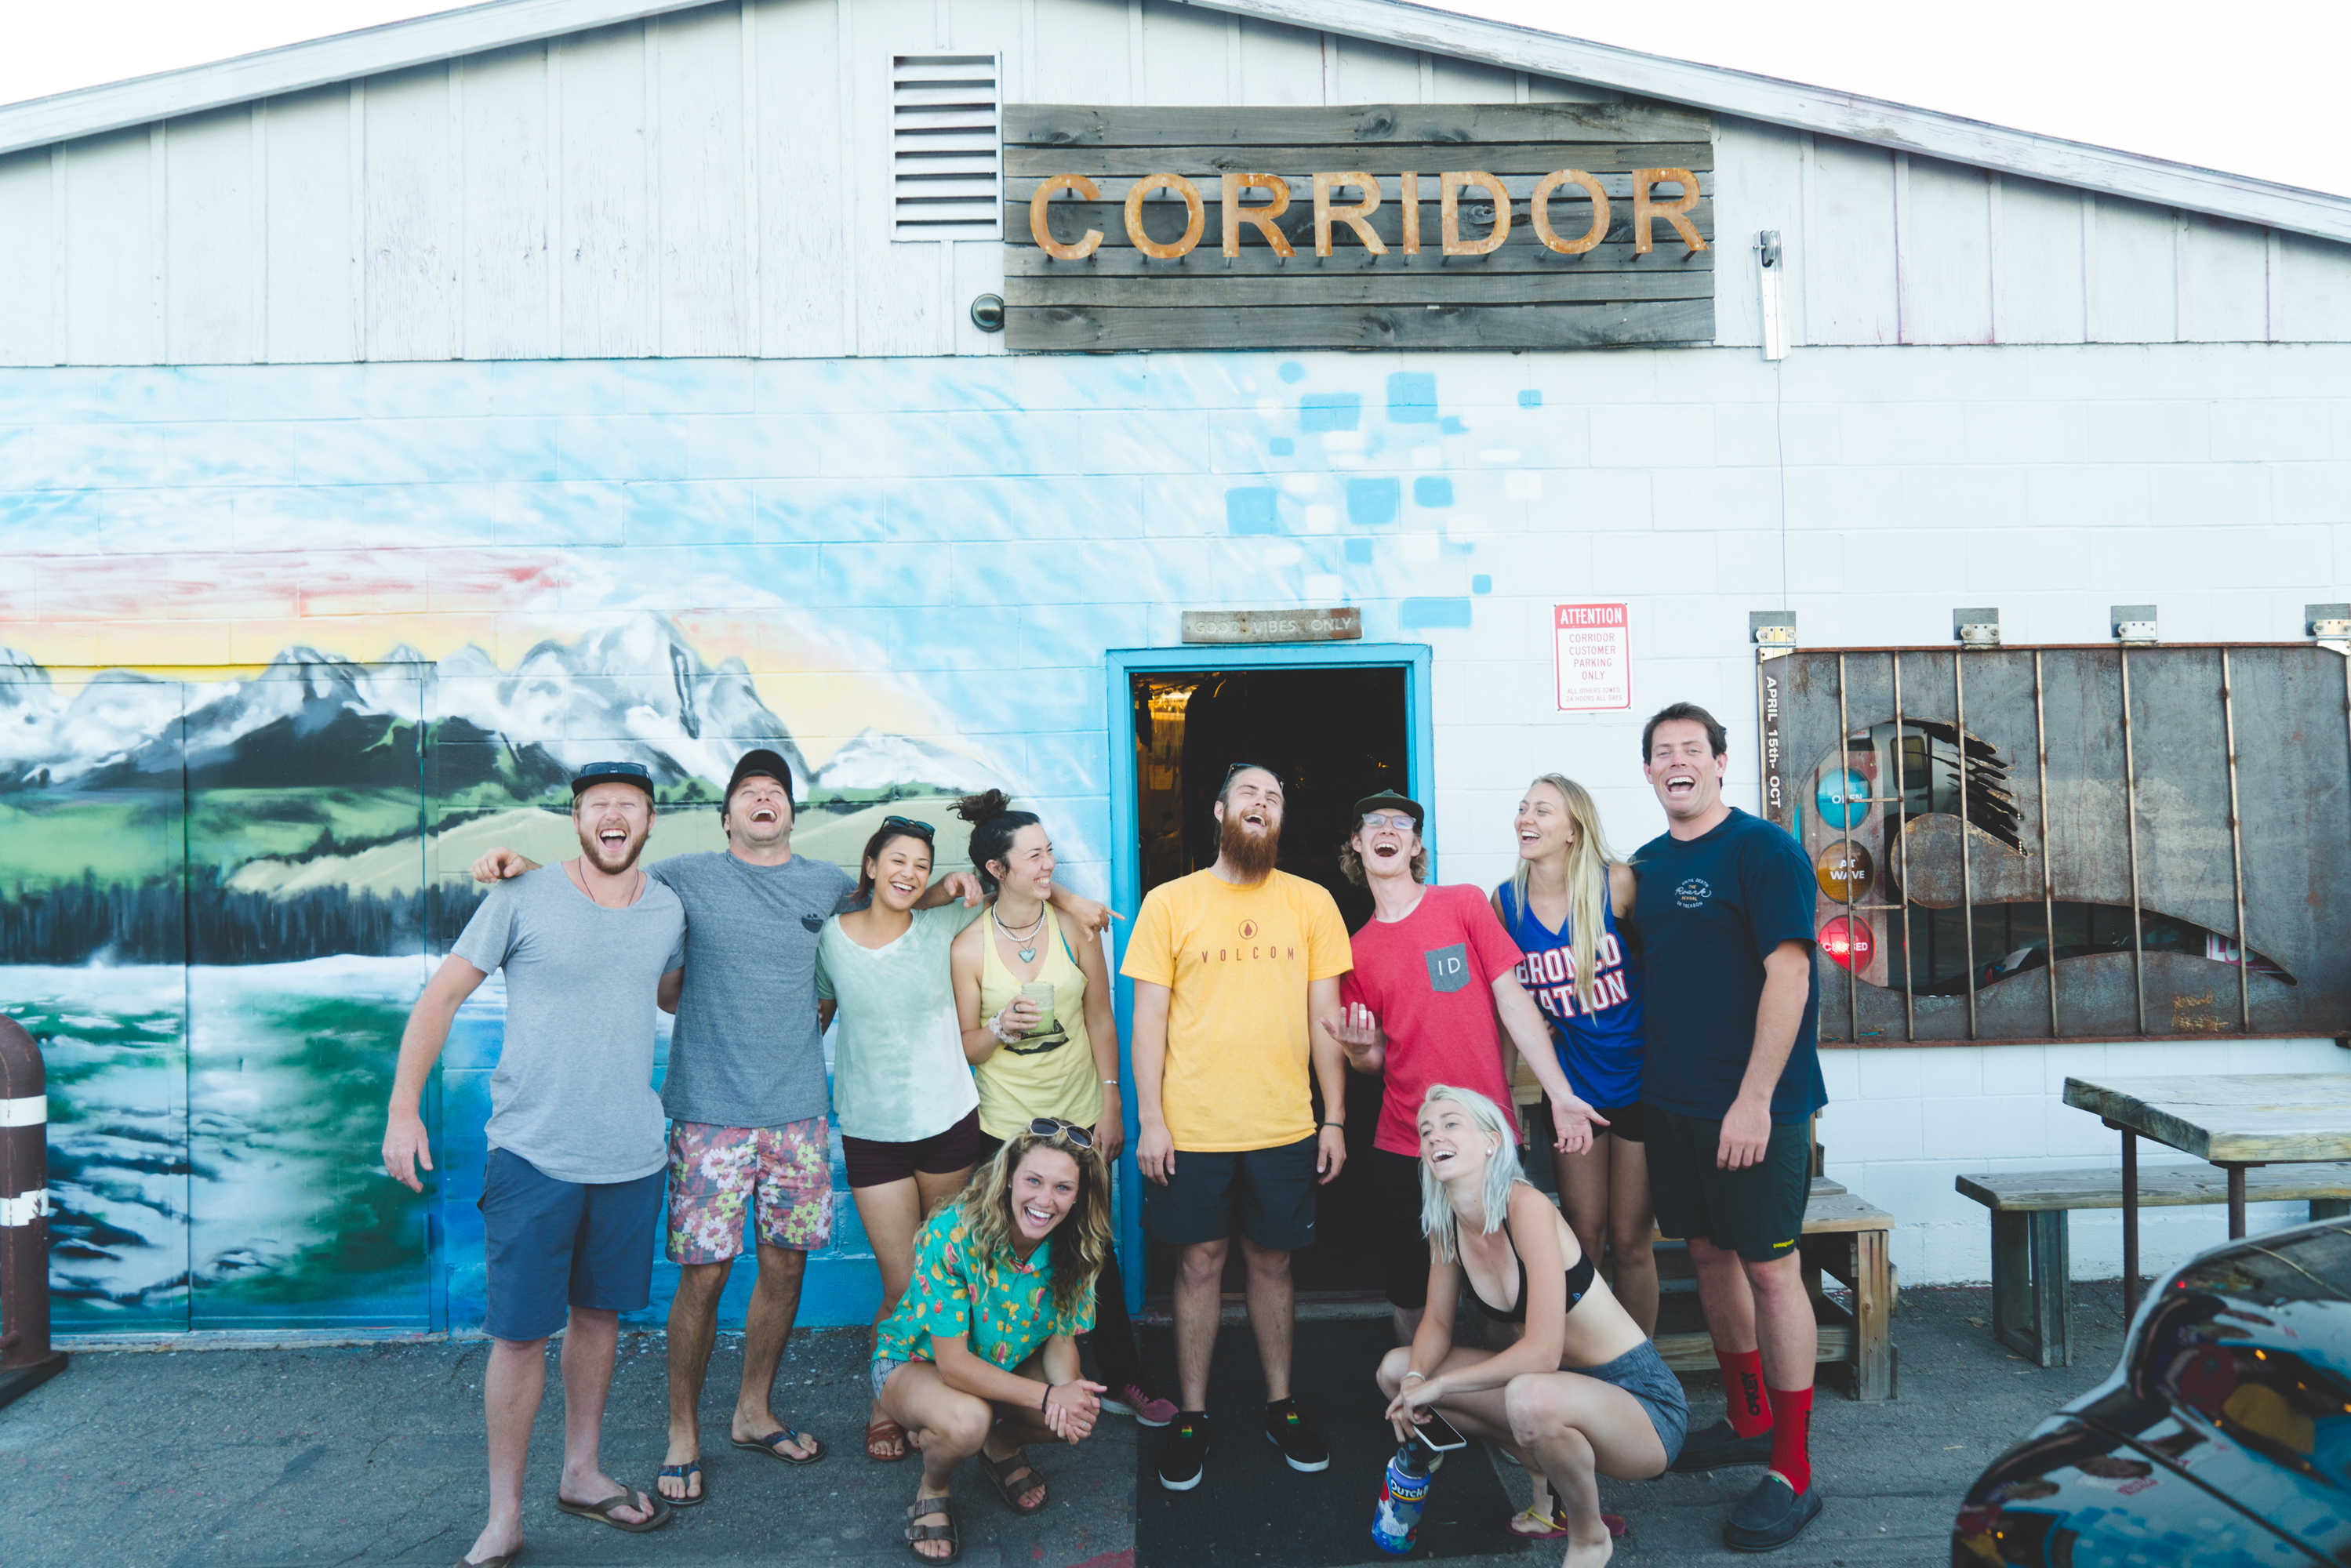 Red paddle co usa visit corridor surf shop in boise, idaho!